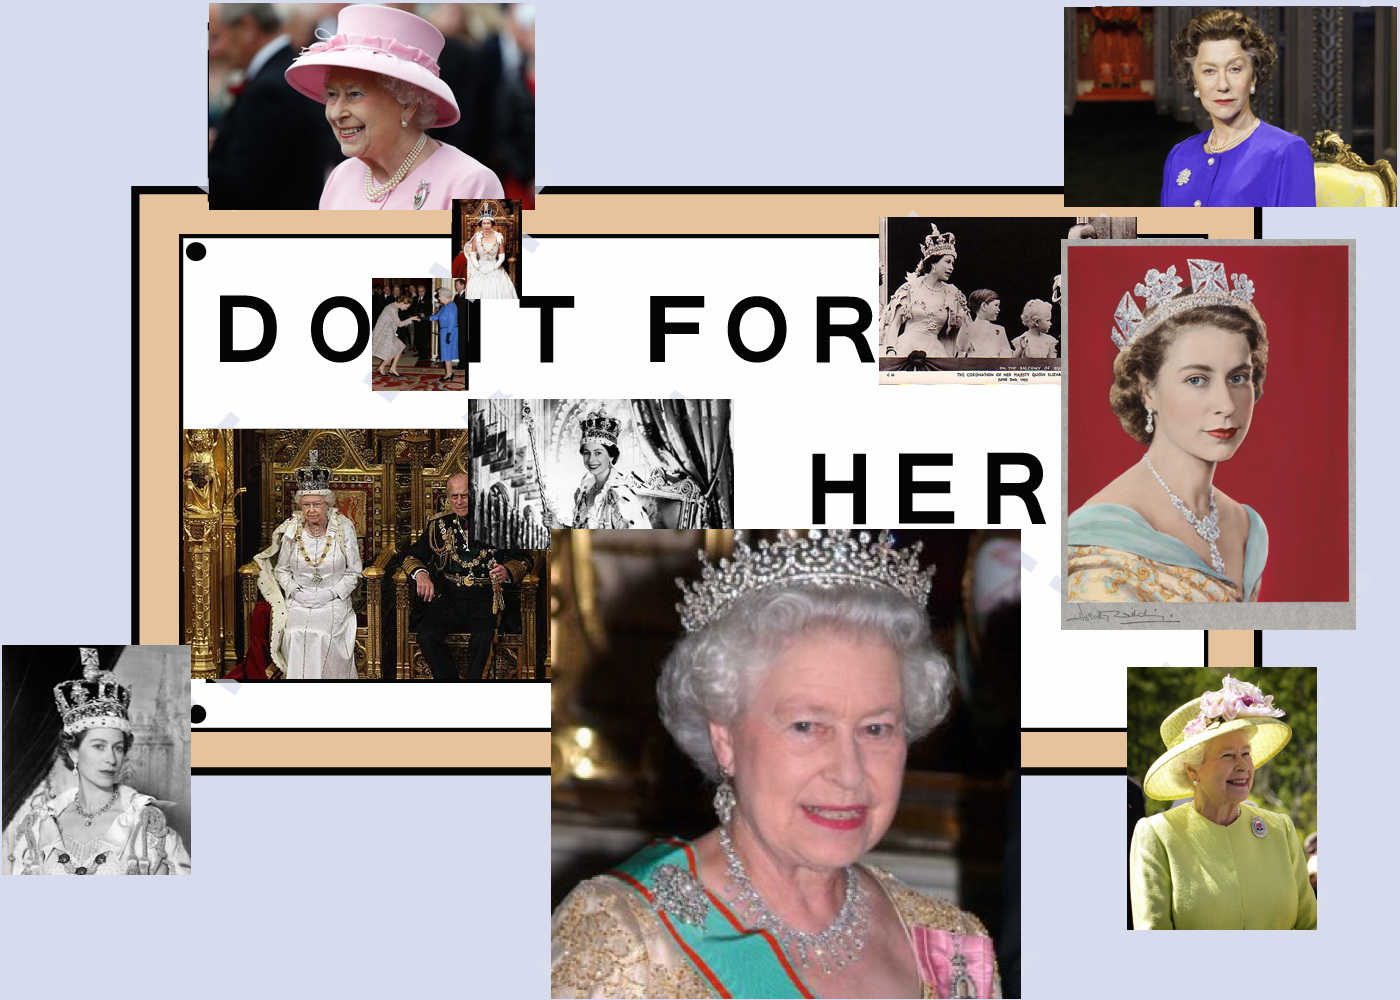 Do it for her - Queen